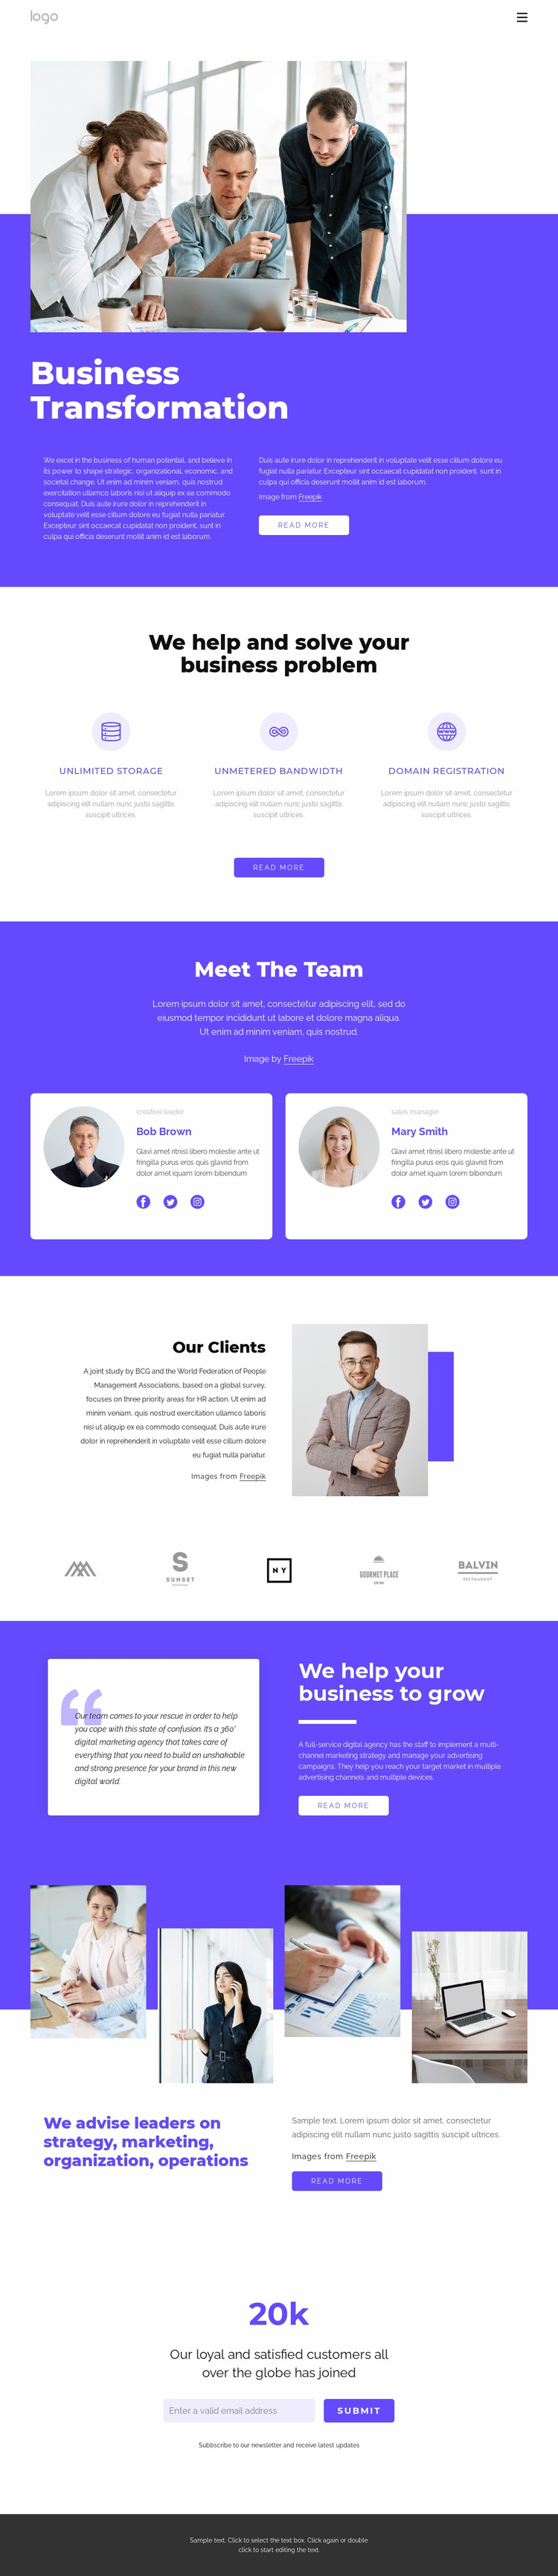 Global management consulting firm Website Design